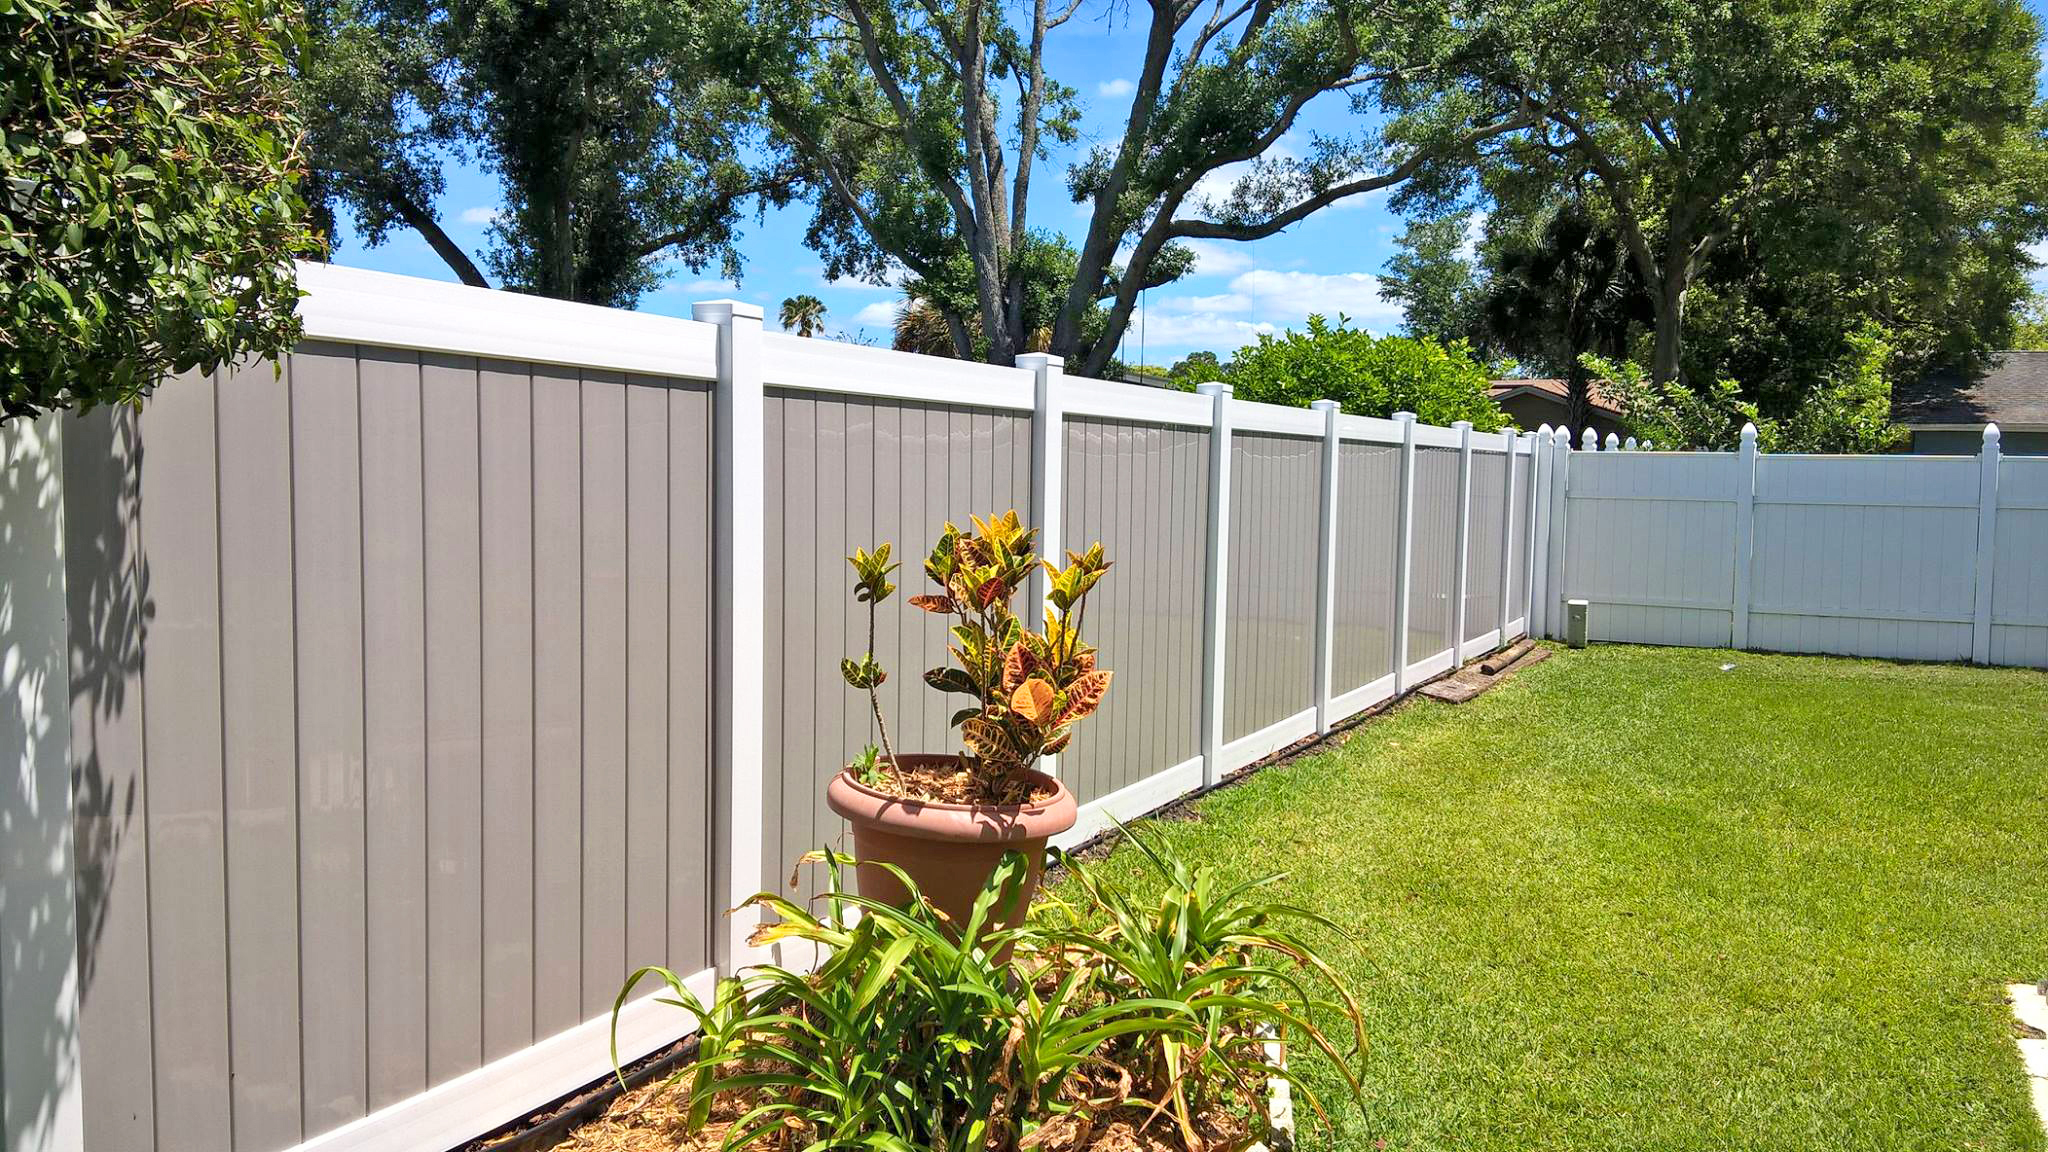 Do I Need a Building Permit to Put Up a Fence?